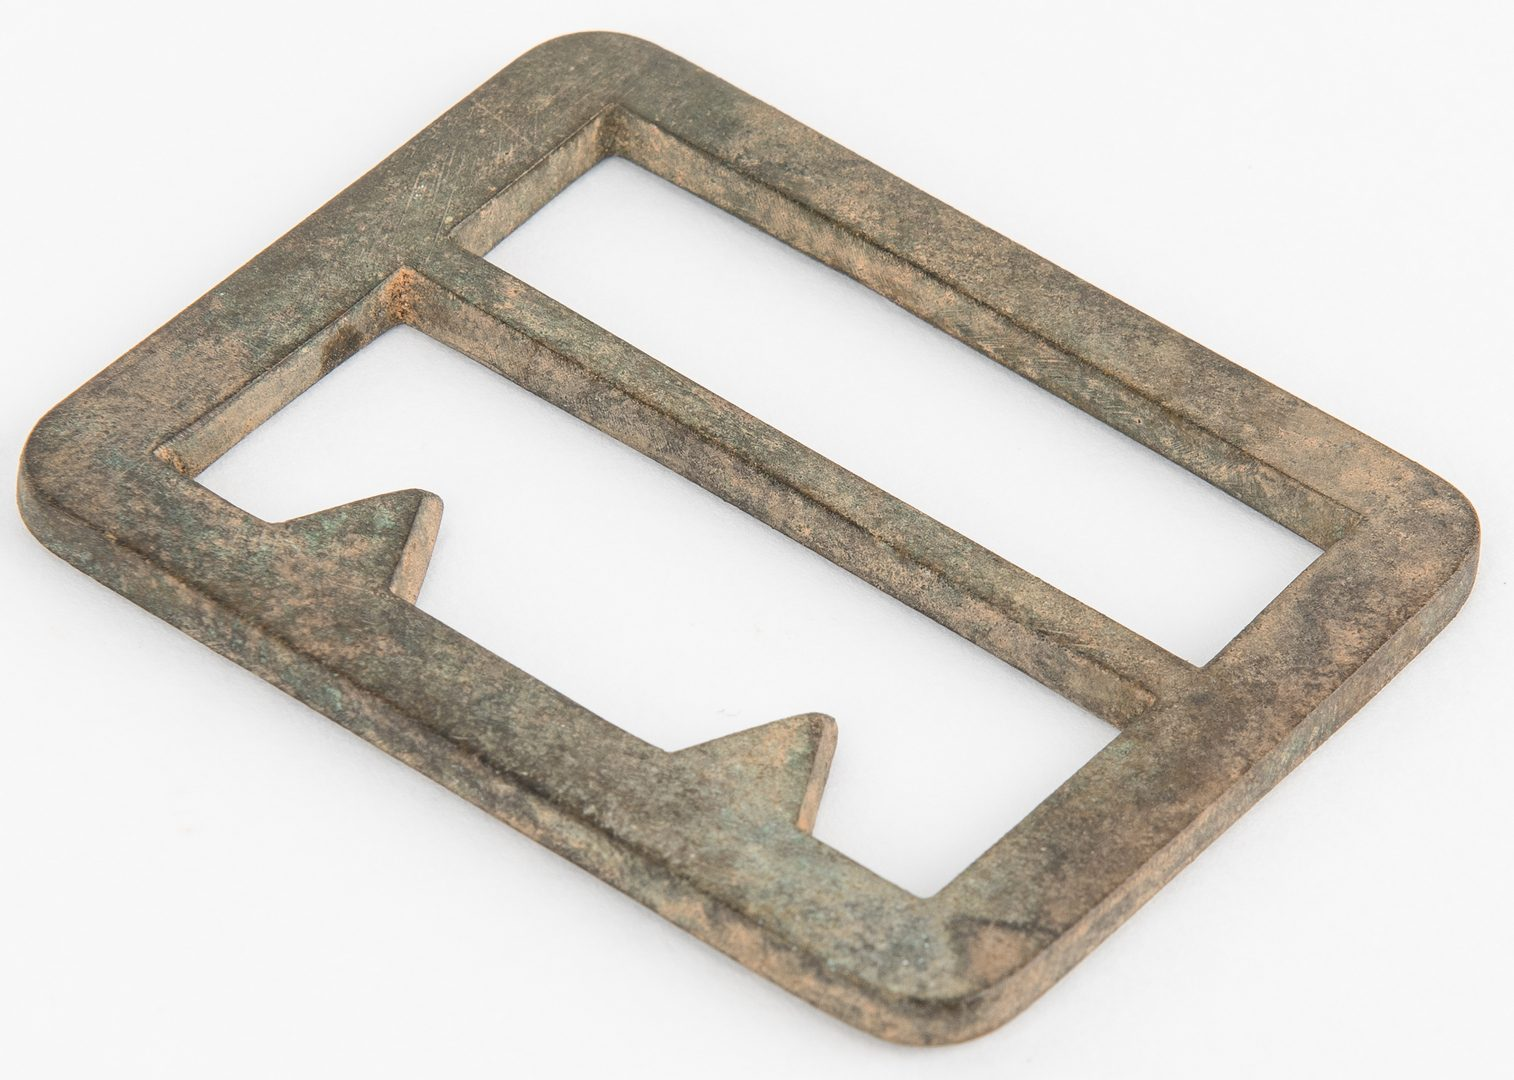 Lot 272: 2 Confederate Frame Buckles, incl. Gutterback, Beveled Edge